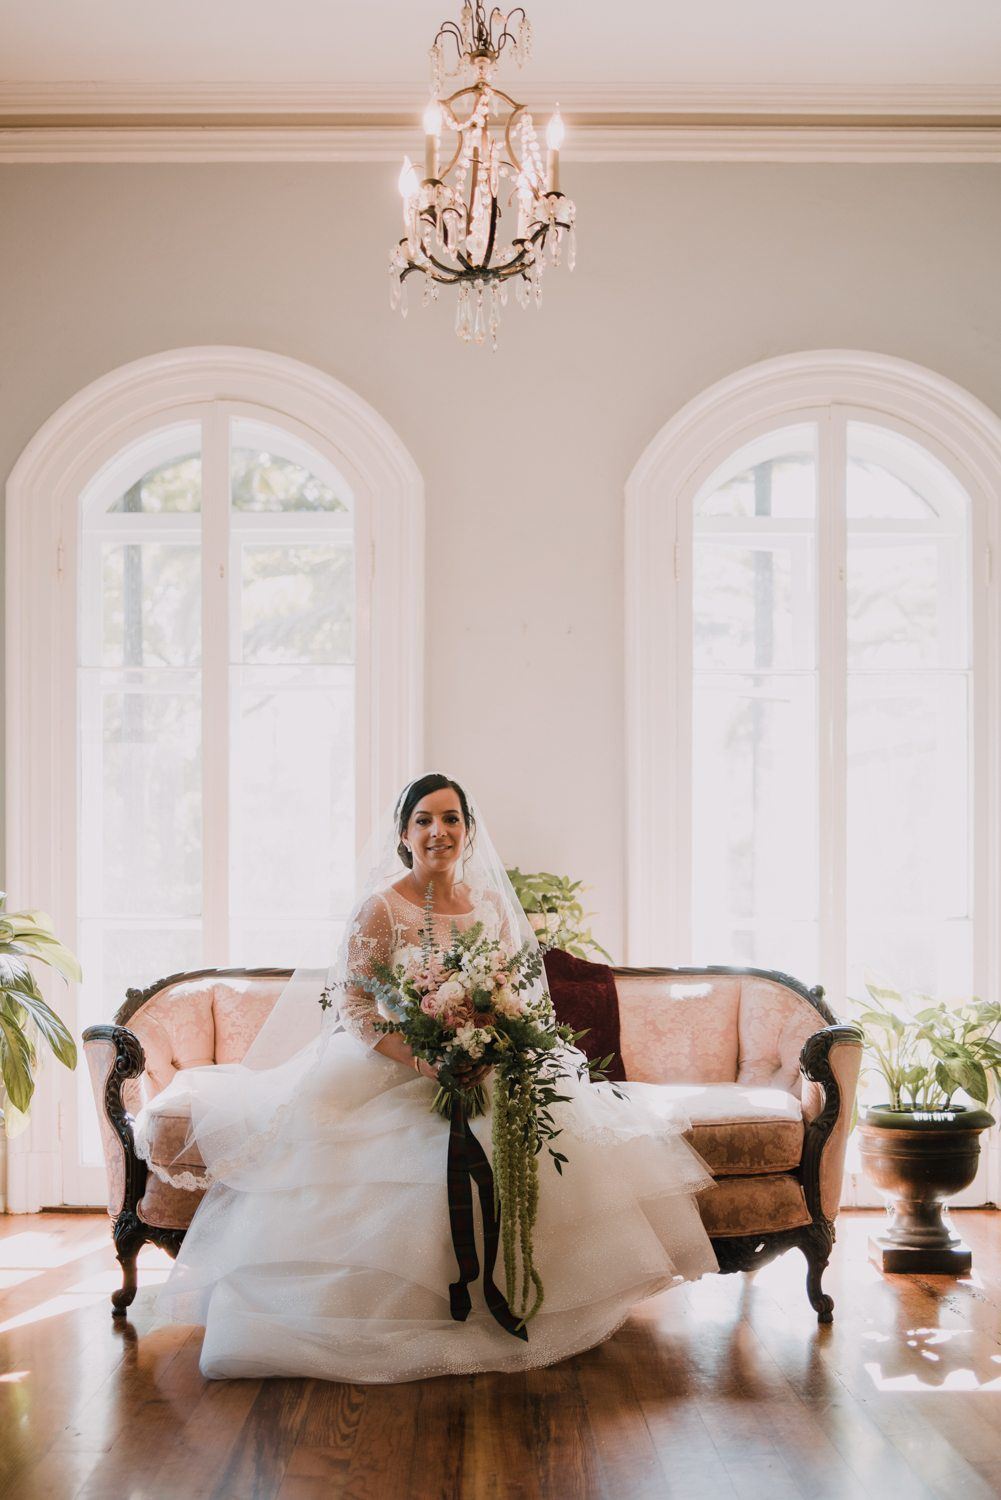 Bride sitting on a couch holding her bouquet